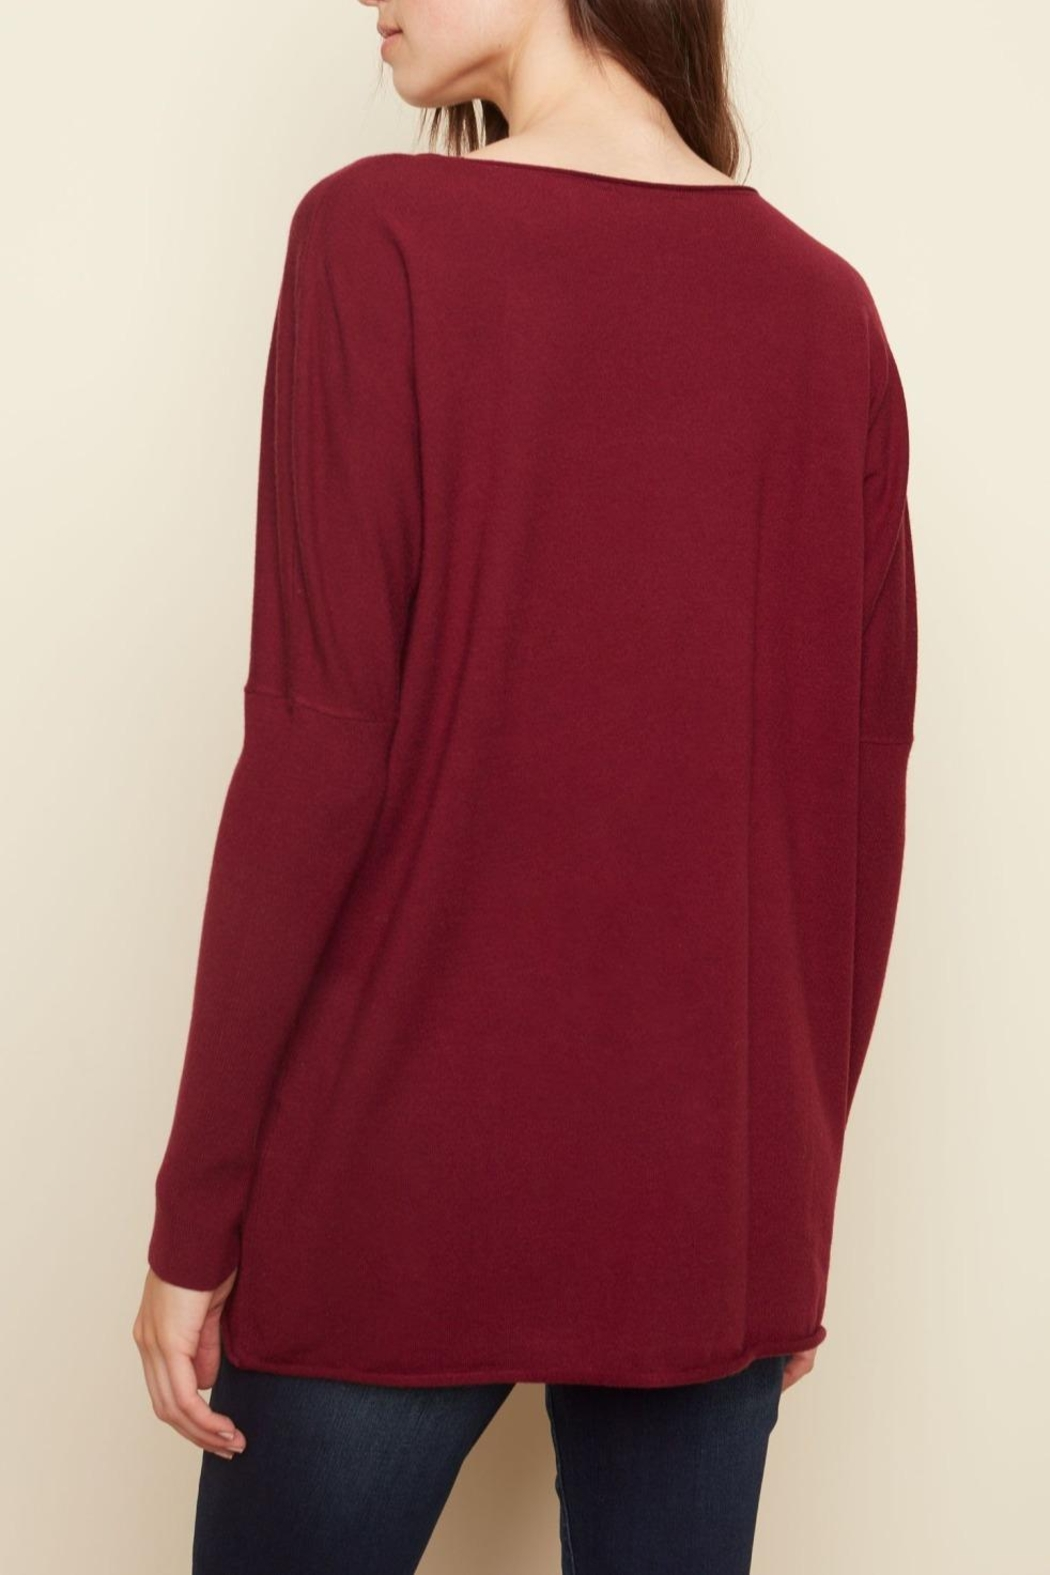 Charlie B. Cranberry Oversized Sweater - Front Full Image